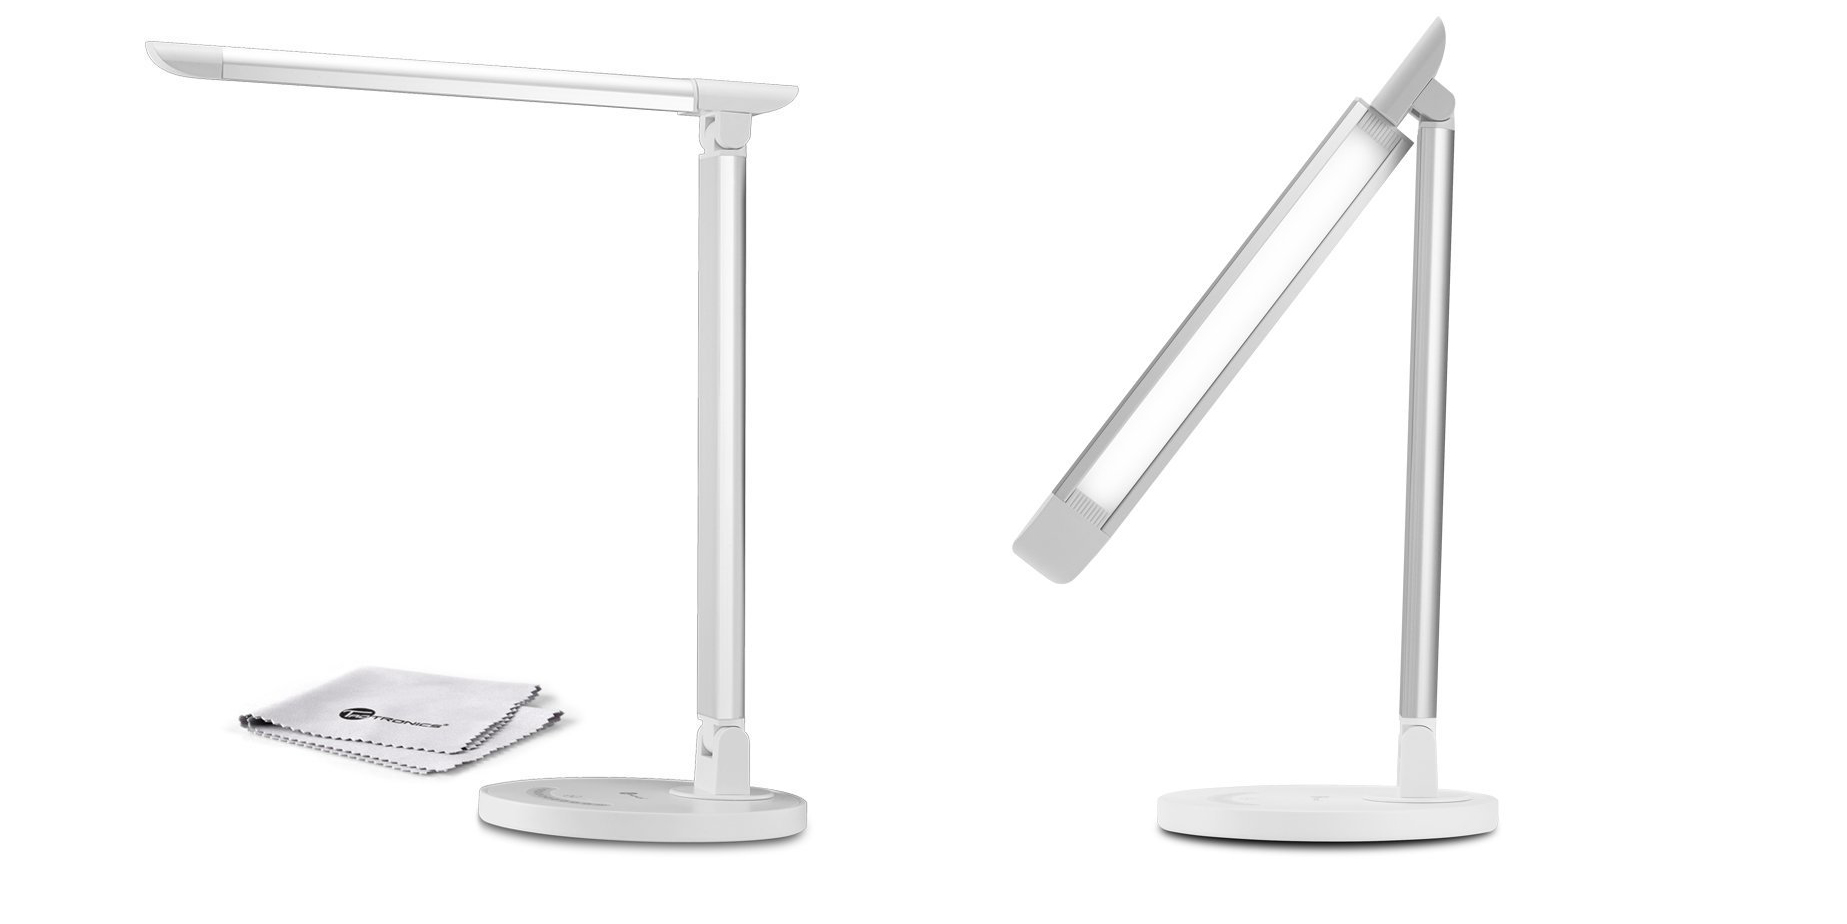 The Best Led Desk Lamps With Apple Friendly Designs Usb